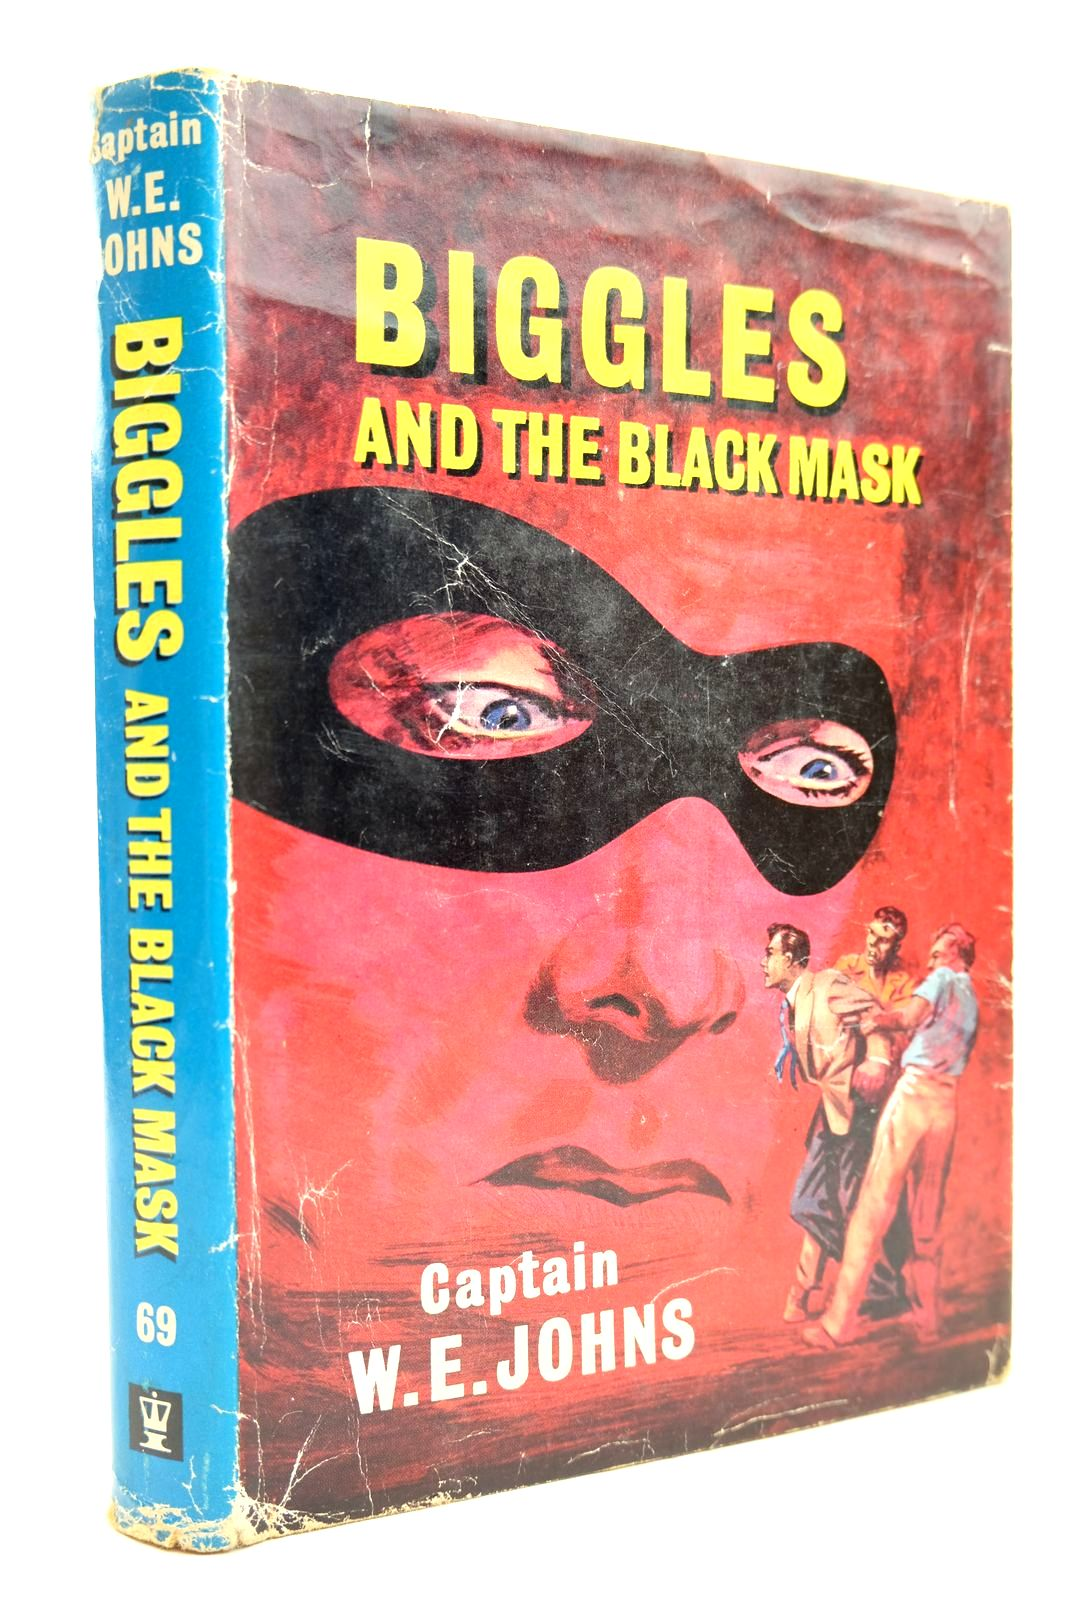 Photo of BIGGLES AND THE BLACK MASK written by Johns, W.E. illustrated by Stead,  published by Hodder & Stoughton (STOCK CODE: 2131853)  for sale by Stella & Rose's Books